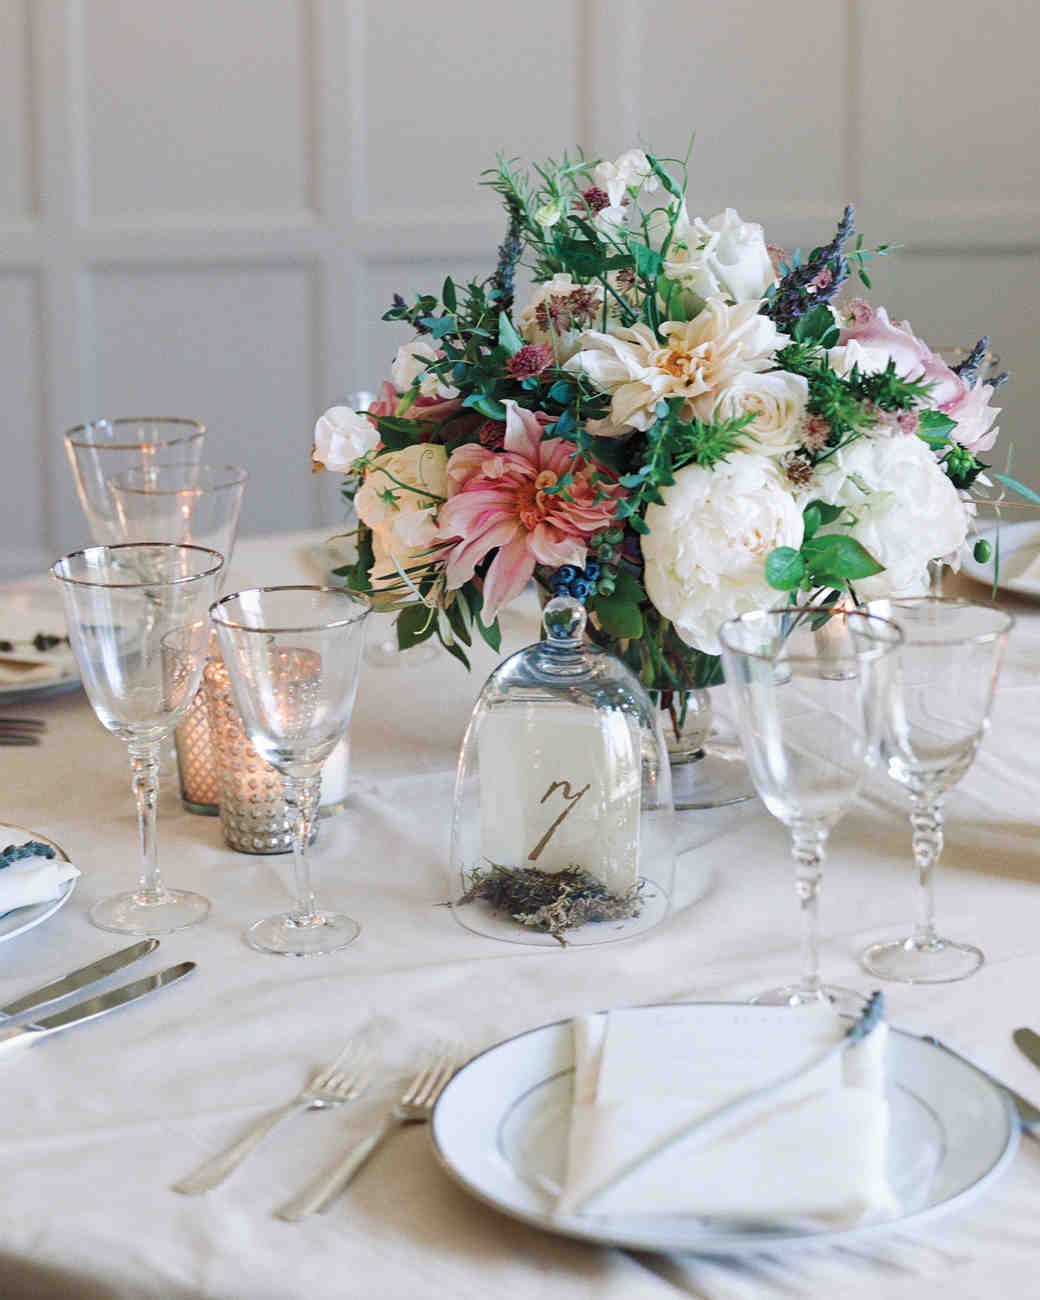 Discussion on this topic: 5 Breathtaking Non-Traditional Centerpieces, 5-breathtaking-non-traditional-centerpieces/